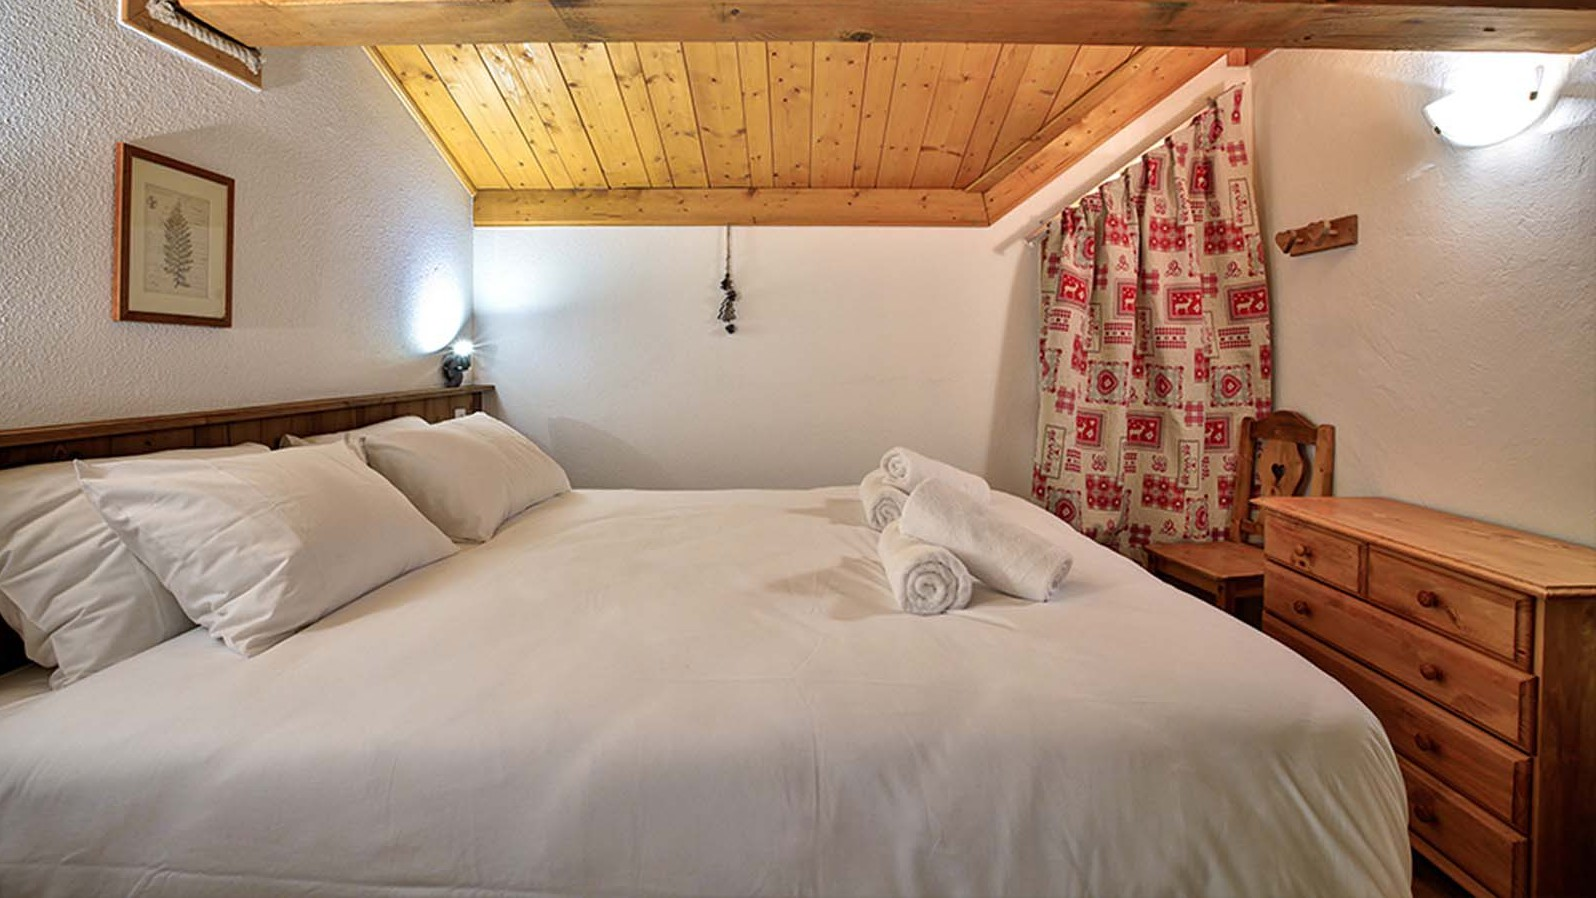 Bedroom - Chalet Guillaume - Ski Chalet in La Plagne, France